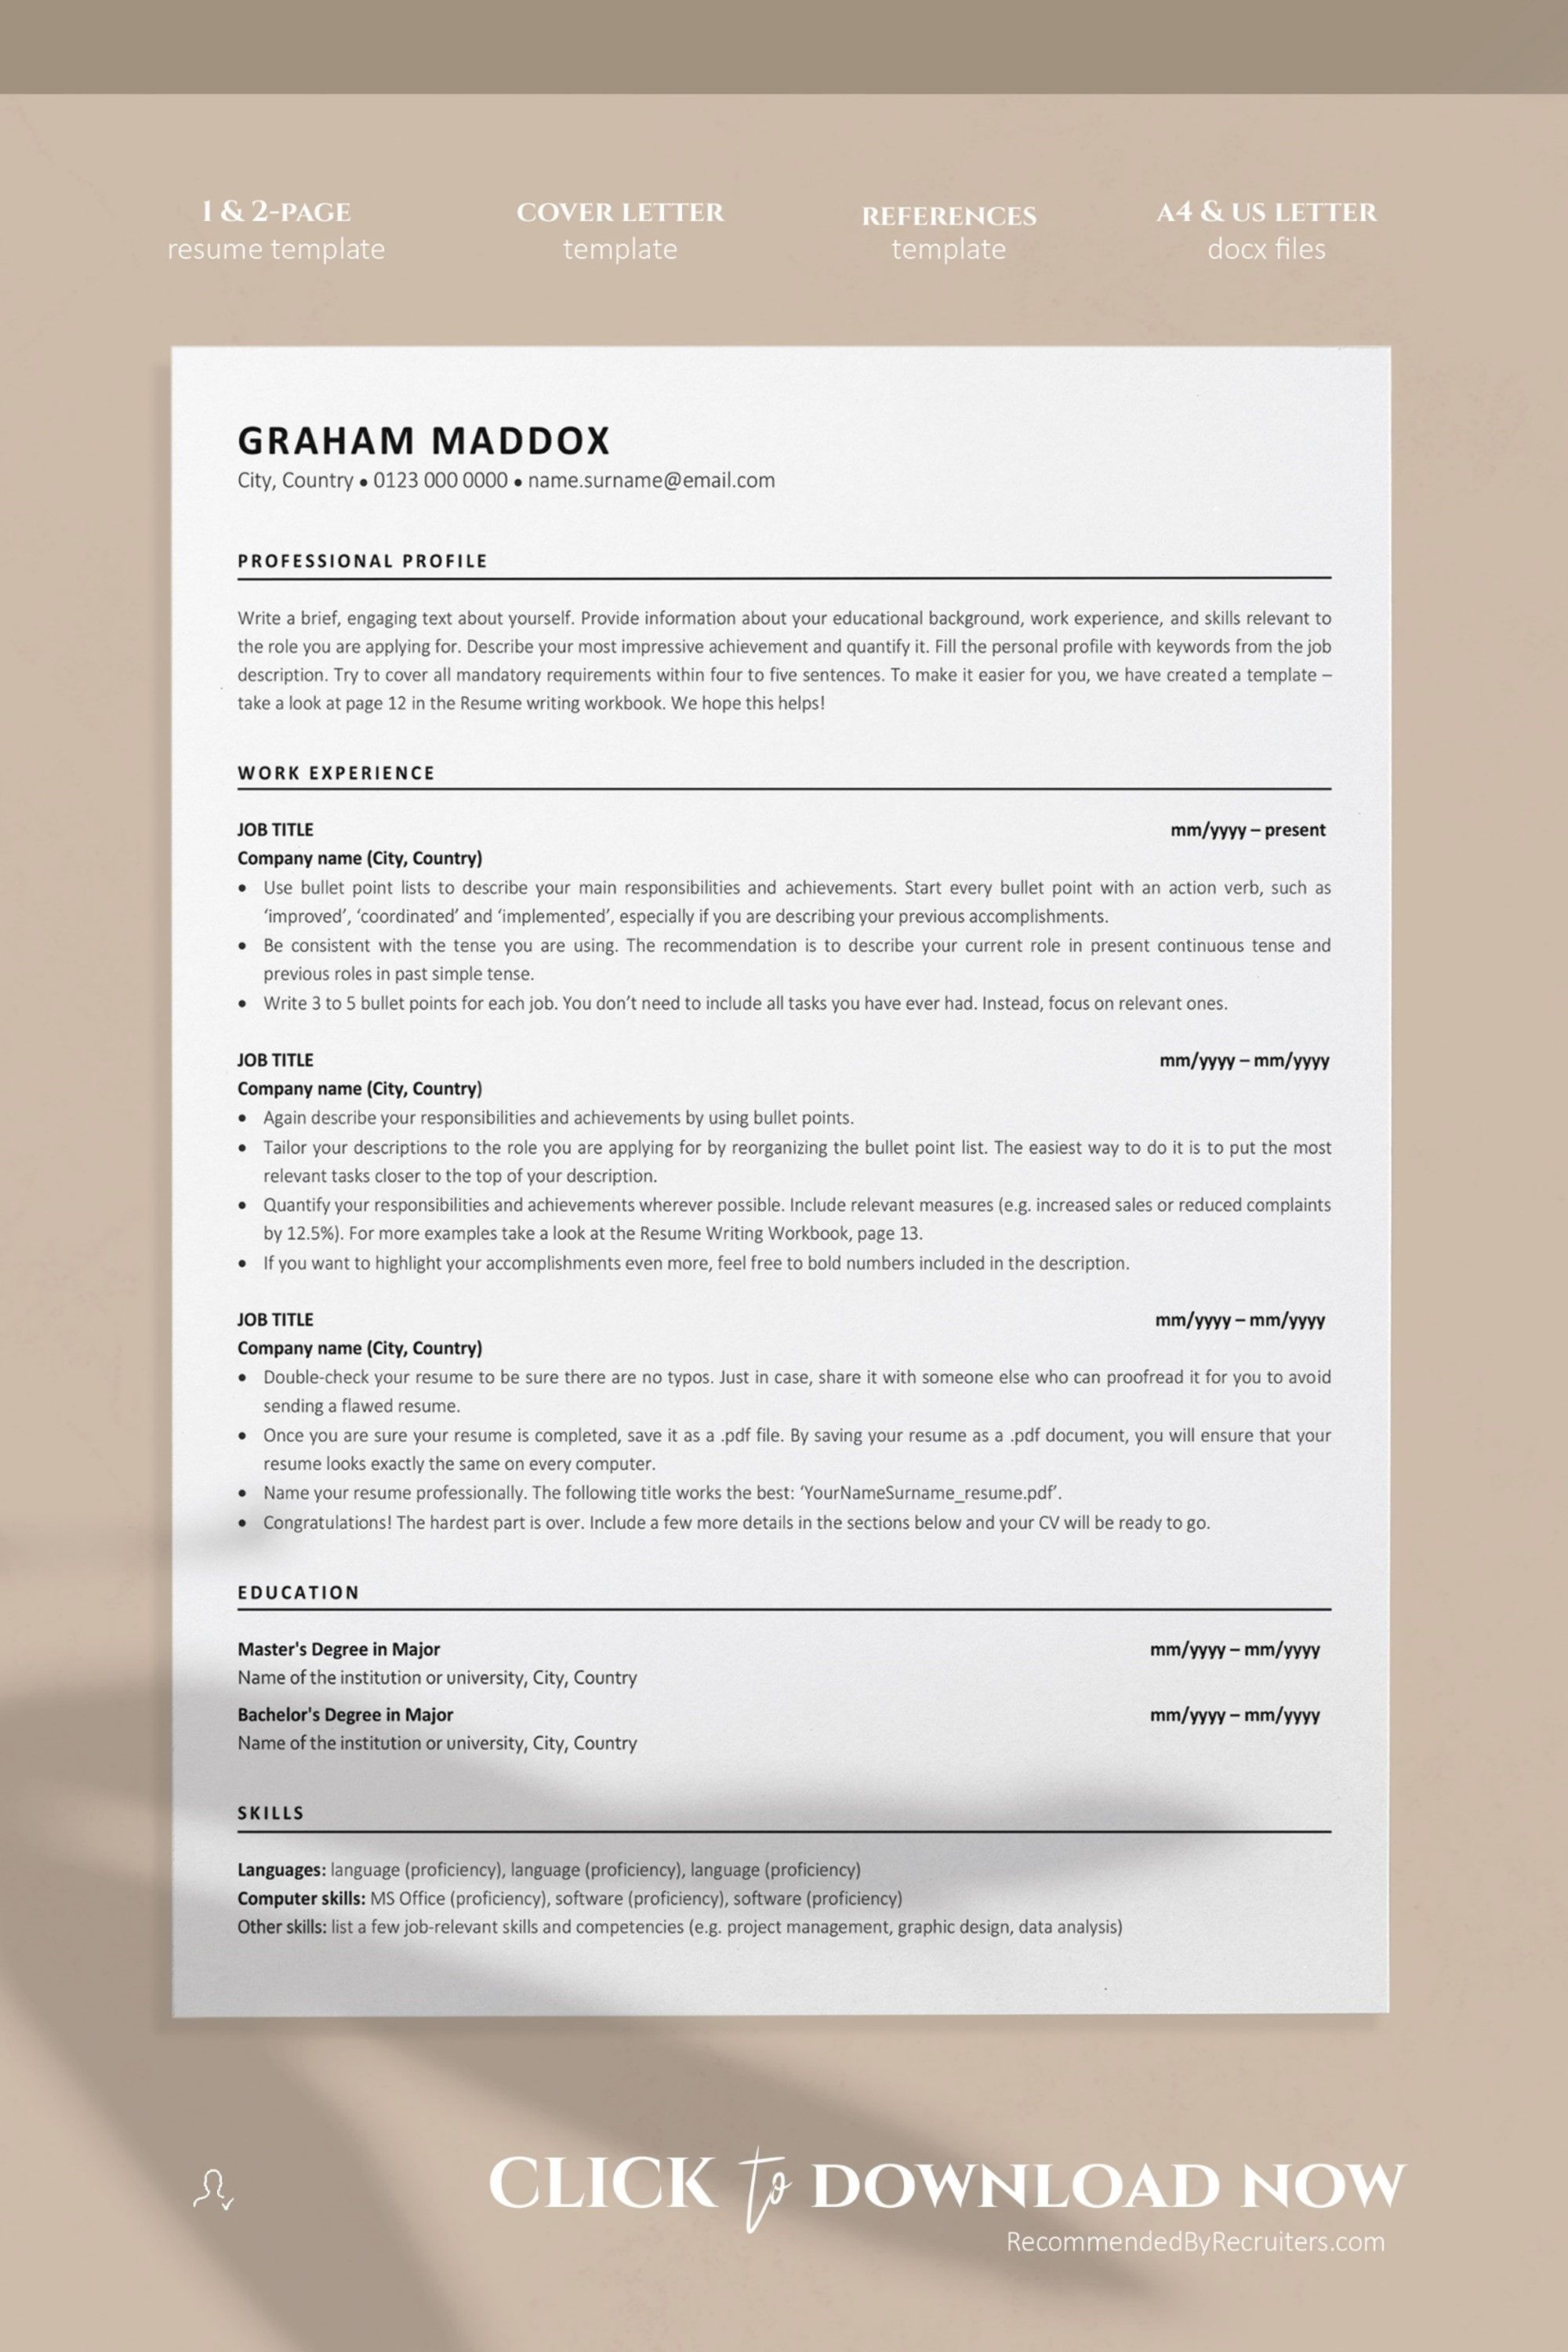 Ace Classic Cv Template Word Resumekraft For Microsoft Word Resume Template Free In 2020 Resume Template Word Free Resume Template Word Resume Template Free